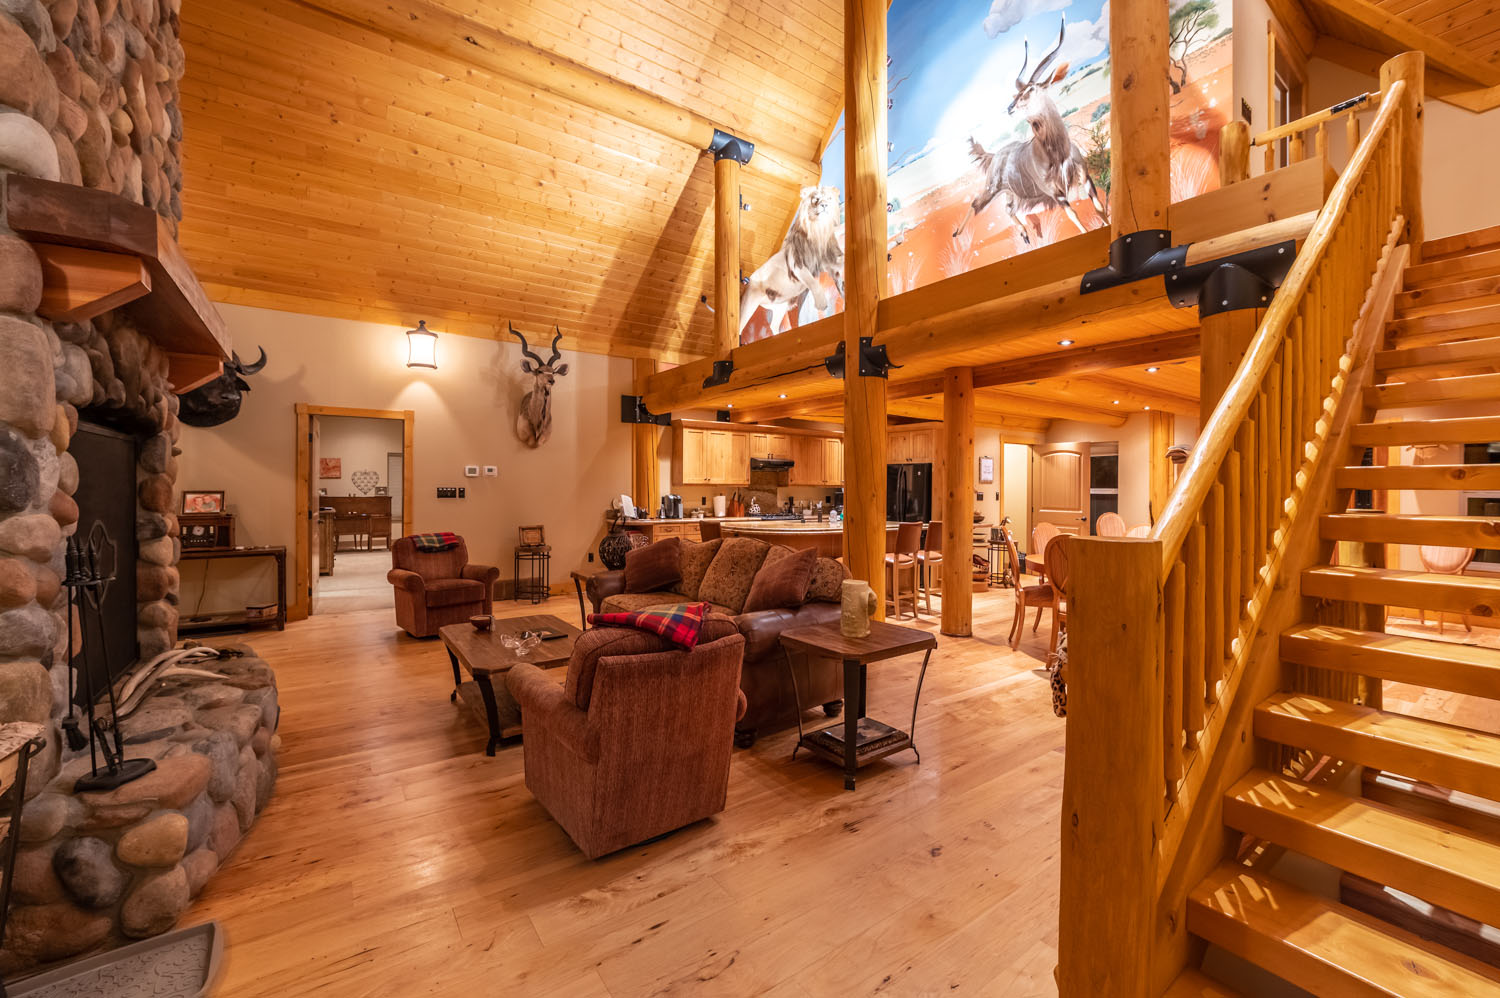 Willow springs ranch 27